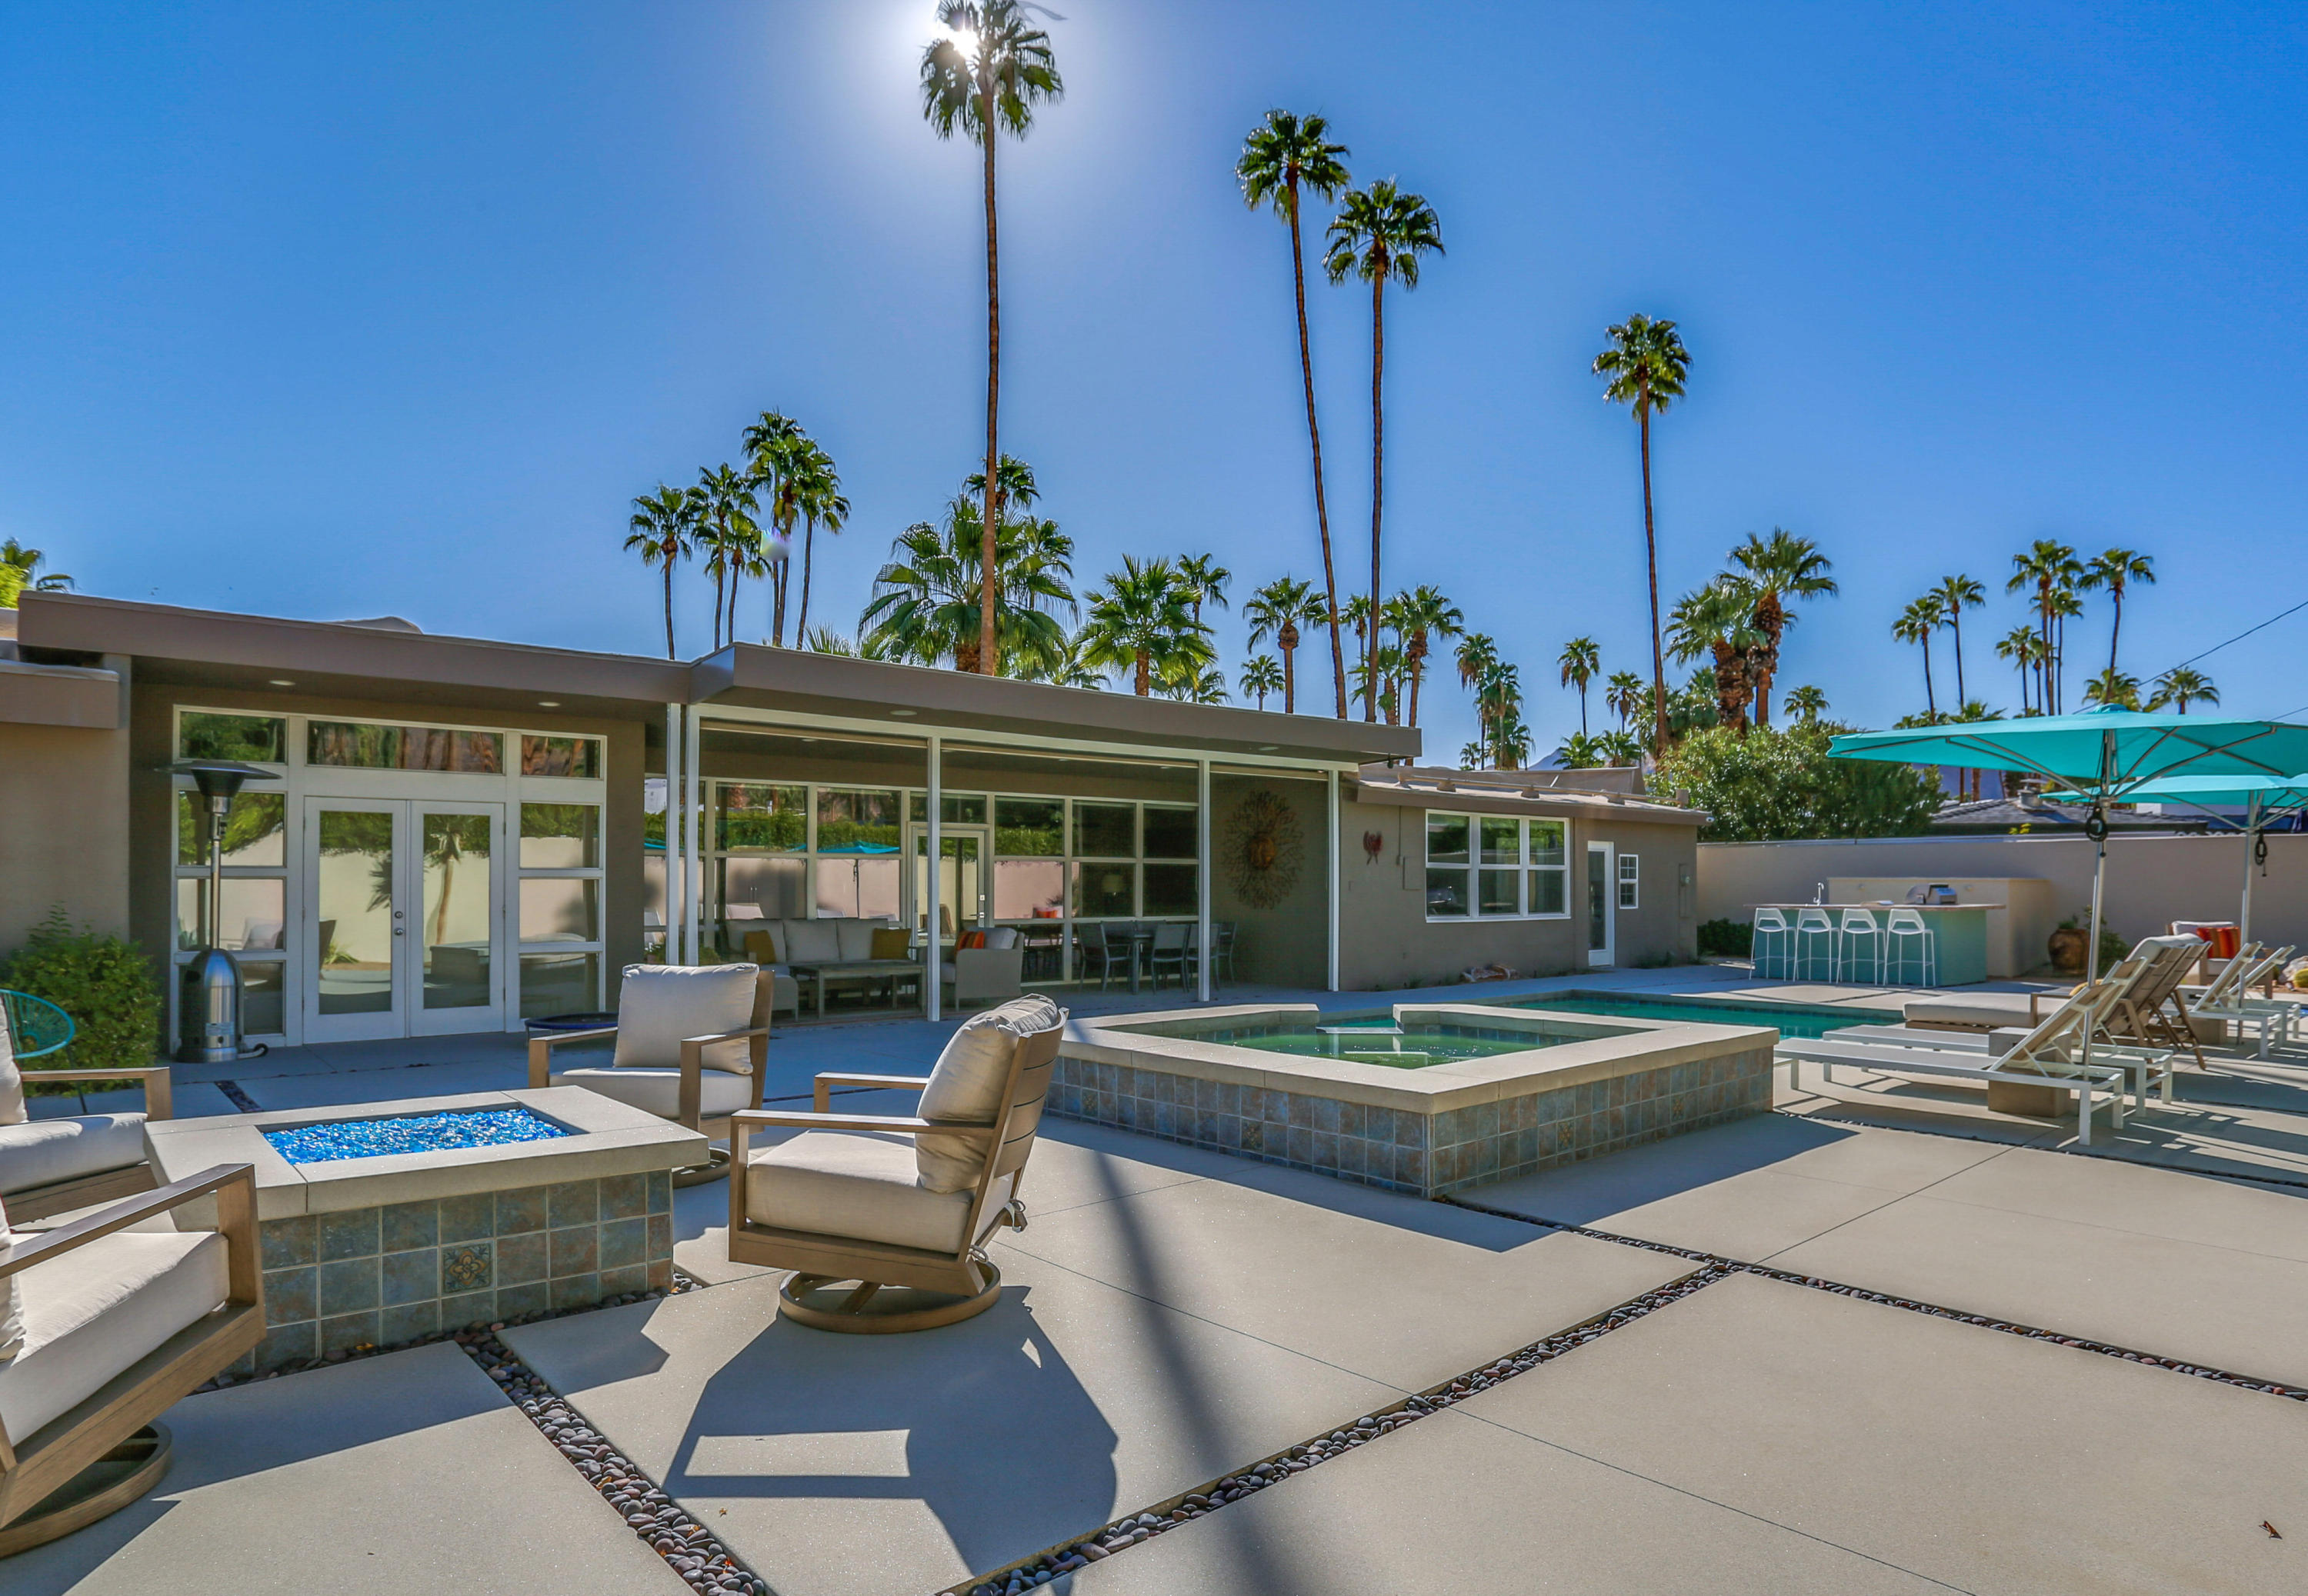 1353 S Calle Rolph, Palm Springs, California 92264, 3 Bedrooms Bedrooms, ,3 BathroomsBathrooms,Residential,Sold,1353 S Calle Rolph,219031165